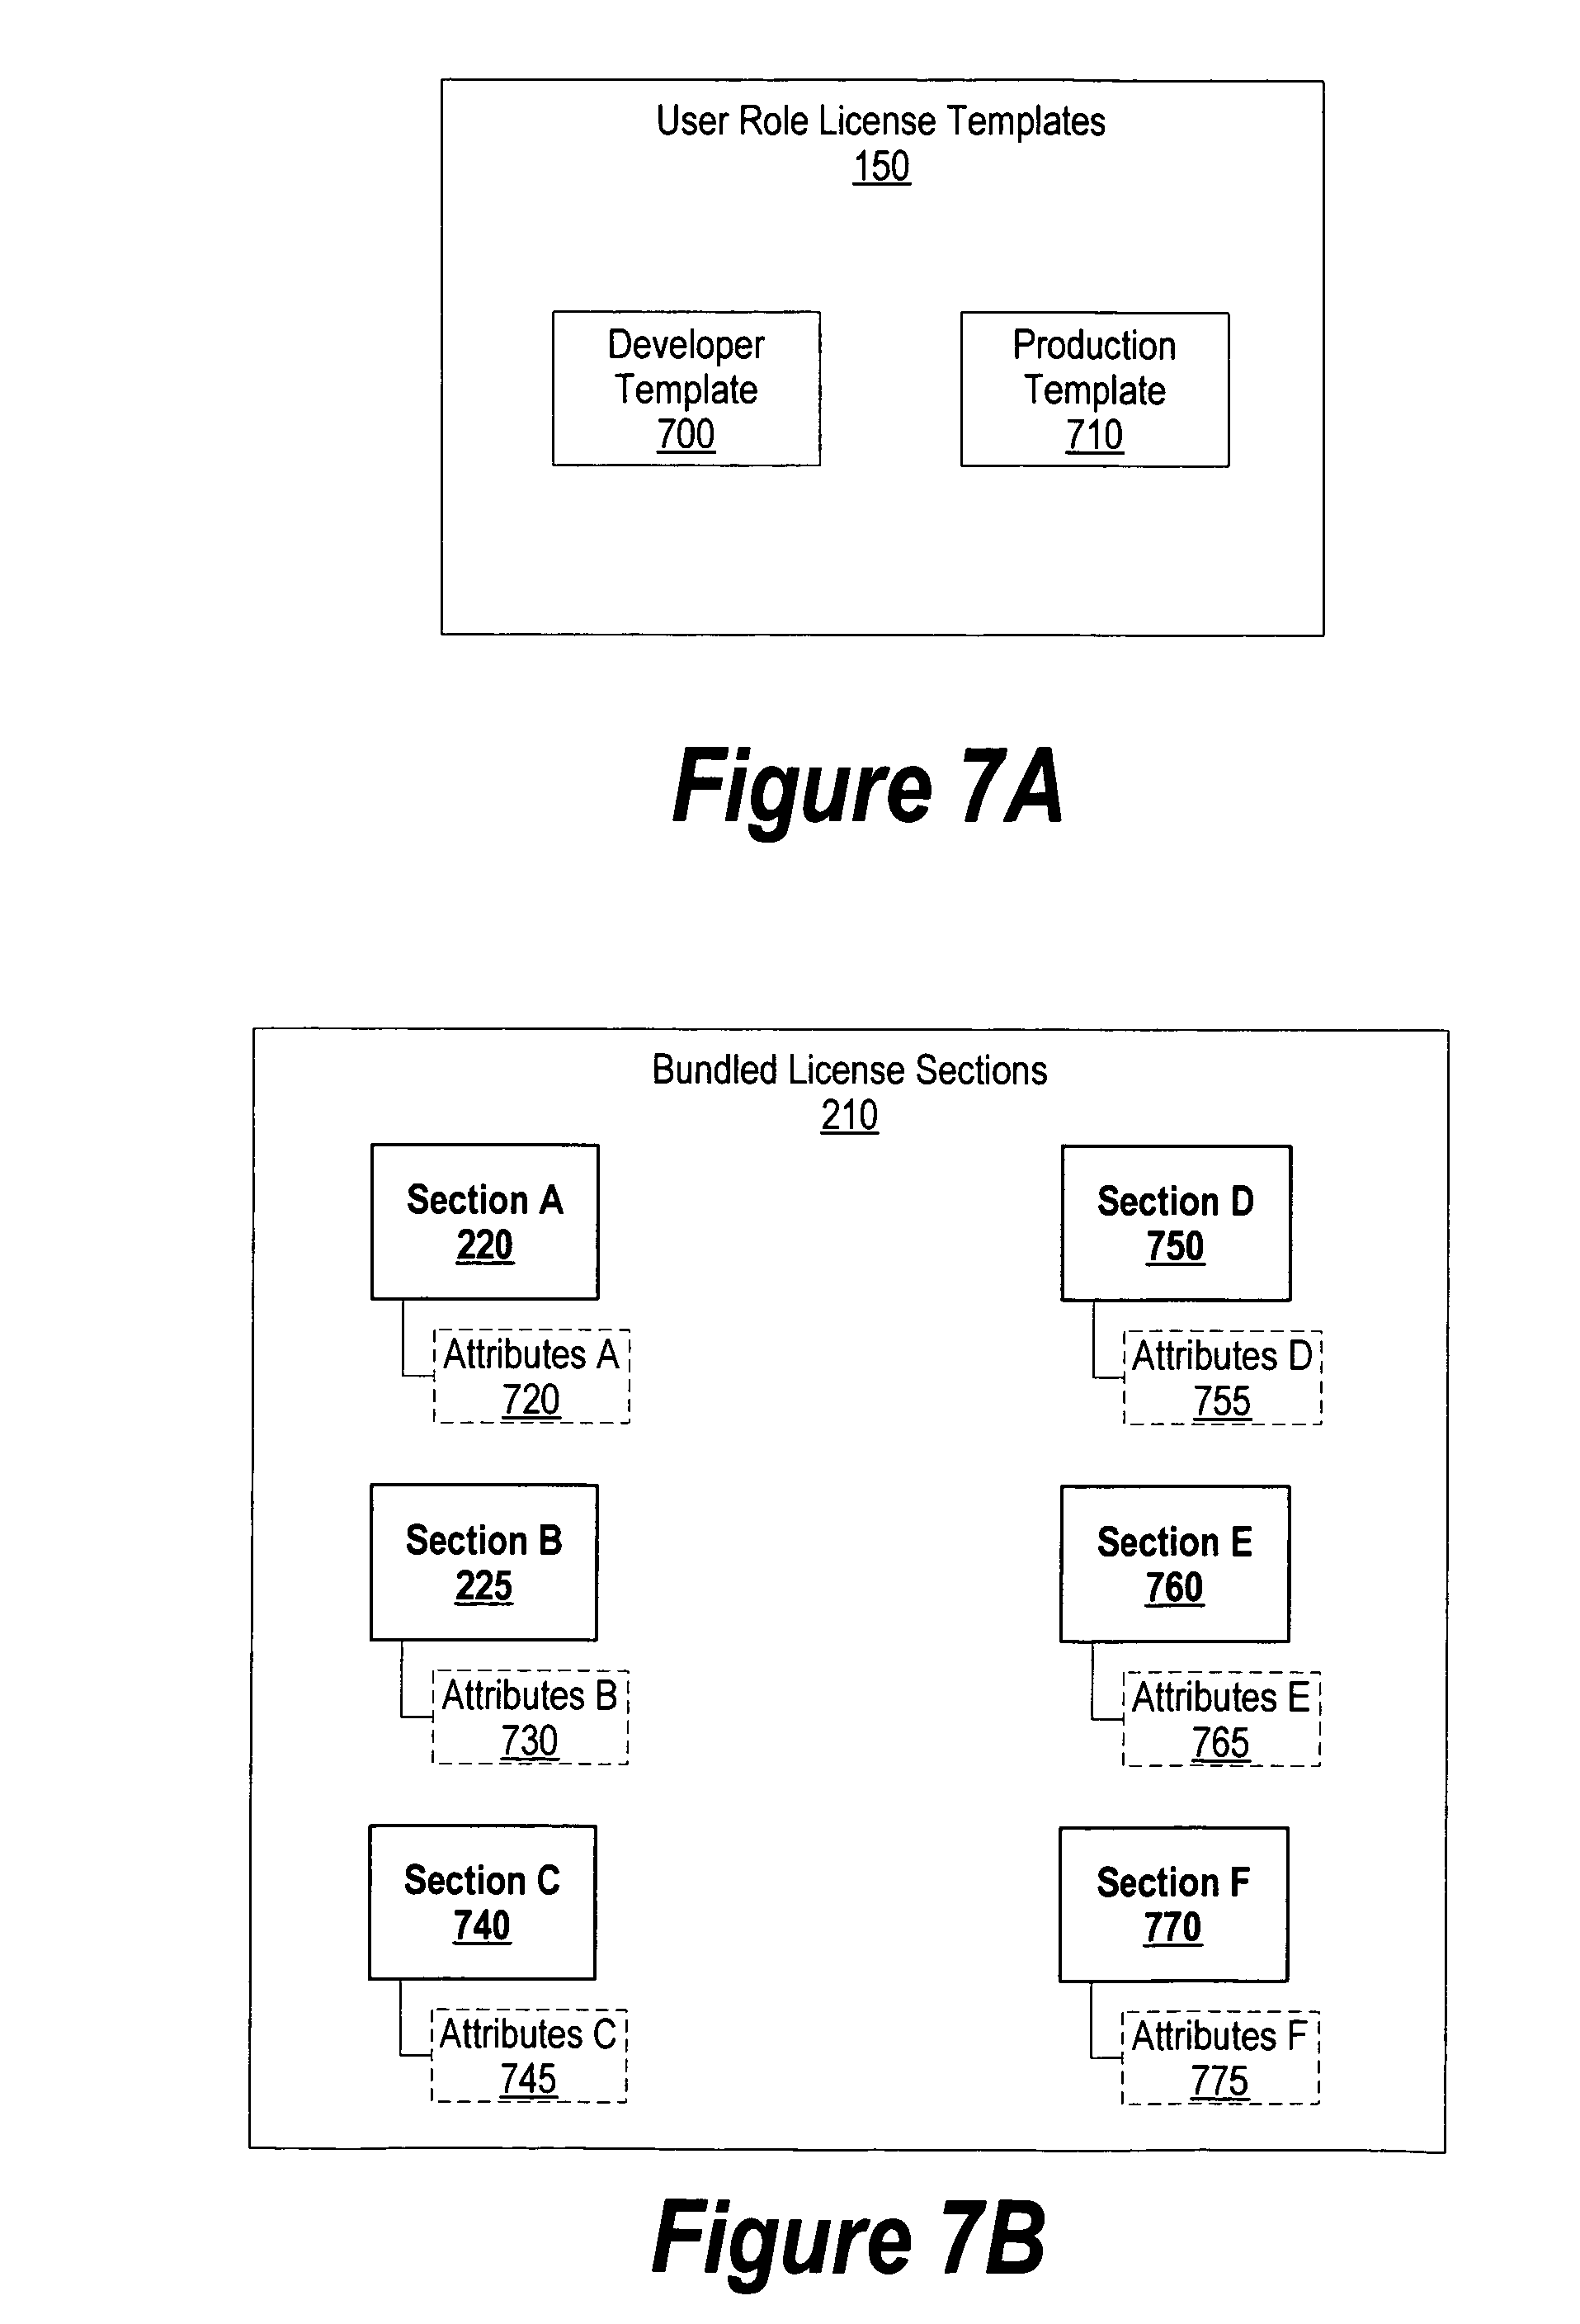 Paten Us20060200419 System And Method For User Role